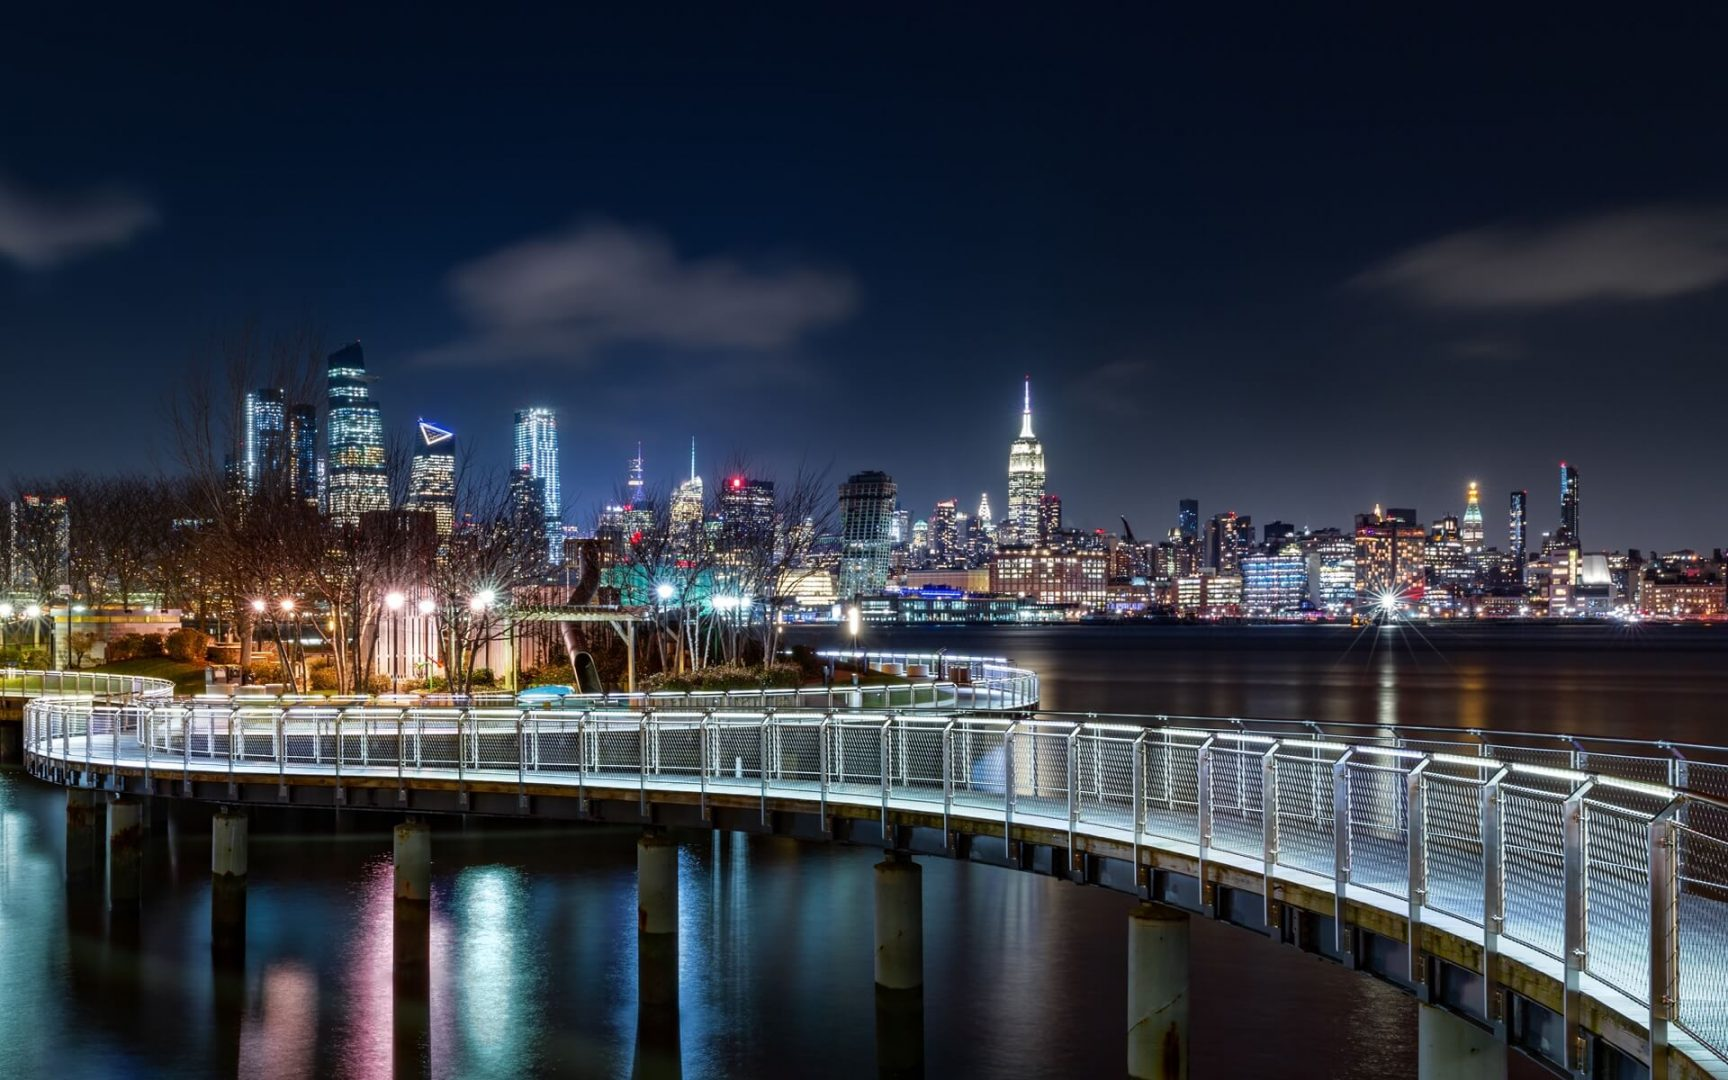 Hoboken City Header Image